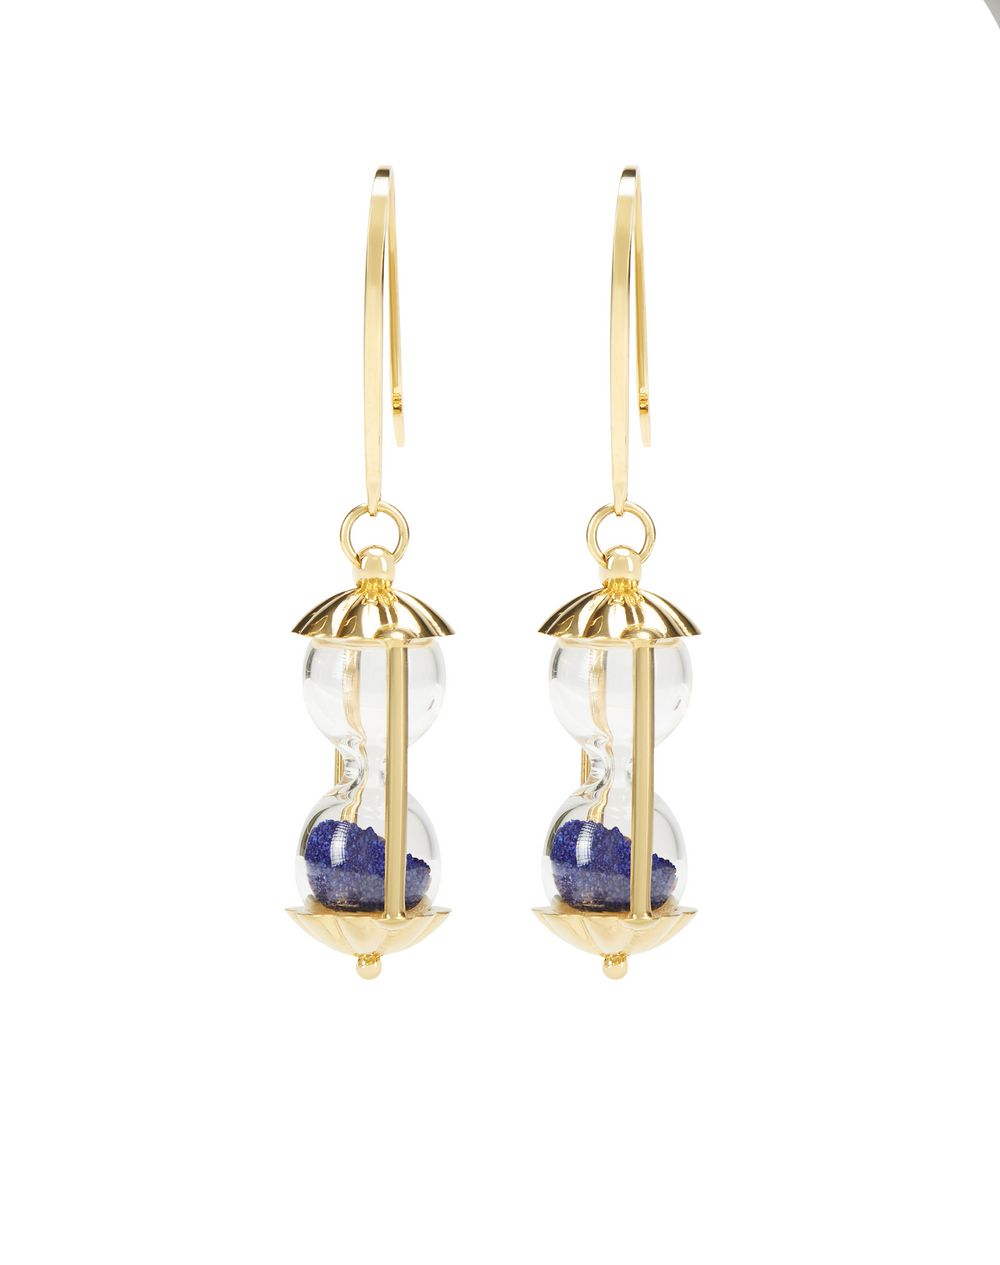 HOURGLASS EARRINGS - Lanvin